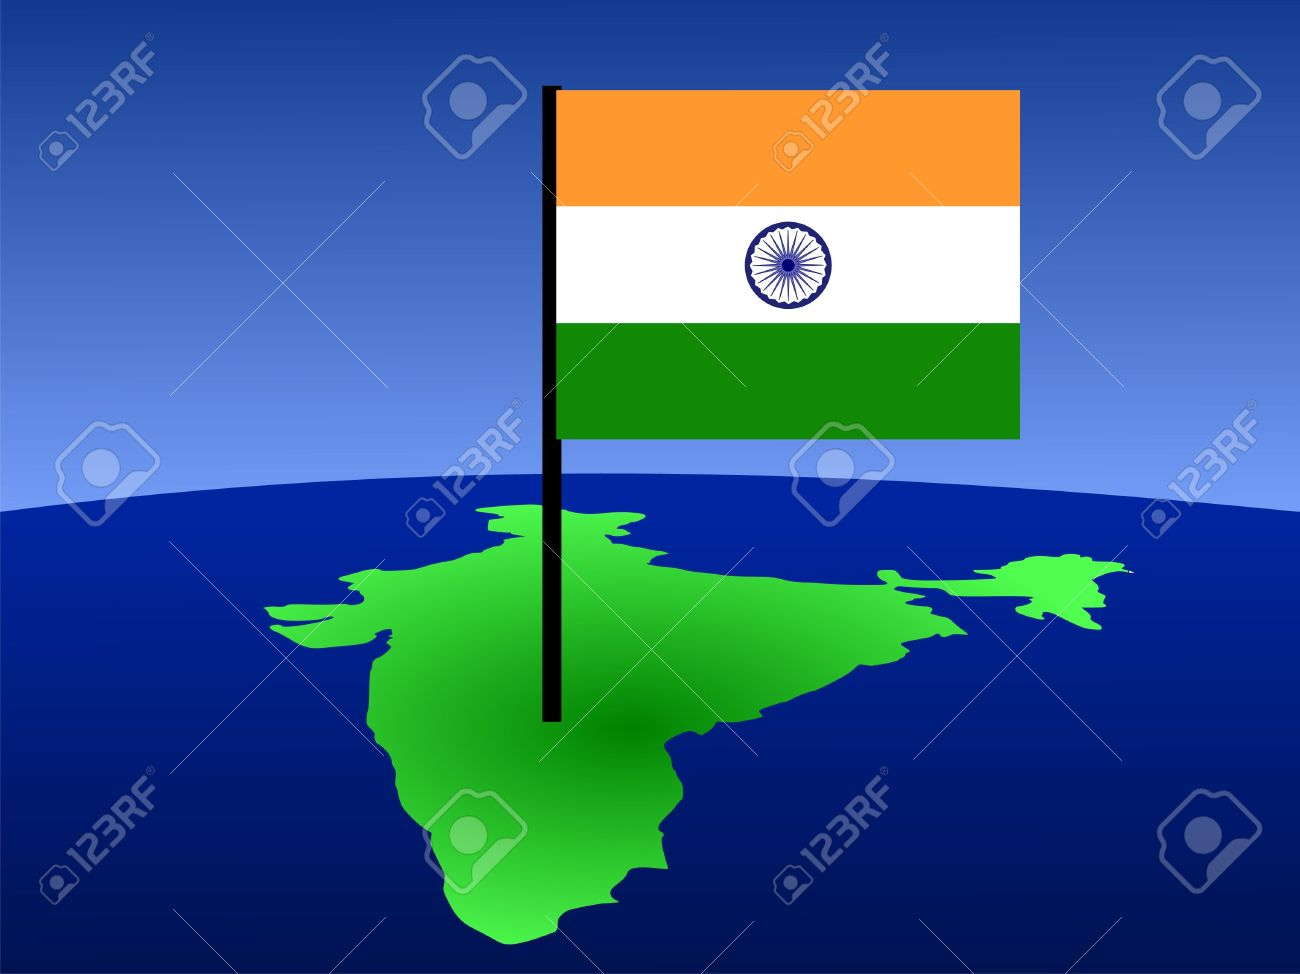 Stock Illustration on indian print with flag, indian map with key, indian man with flag, india flag,